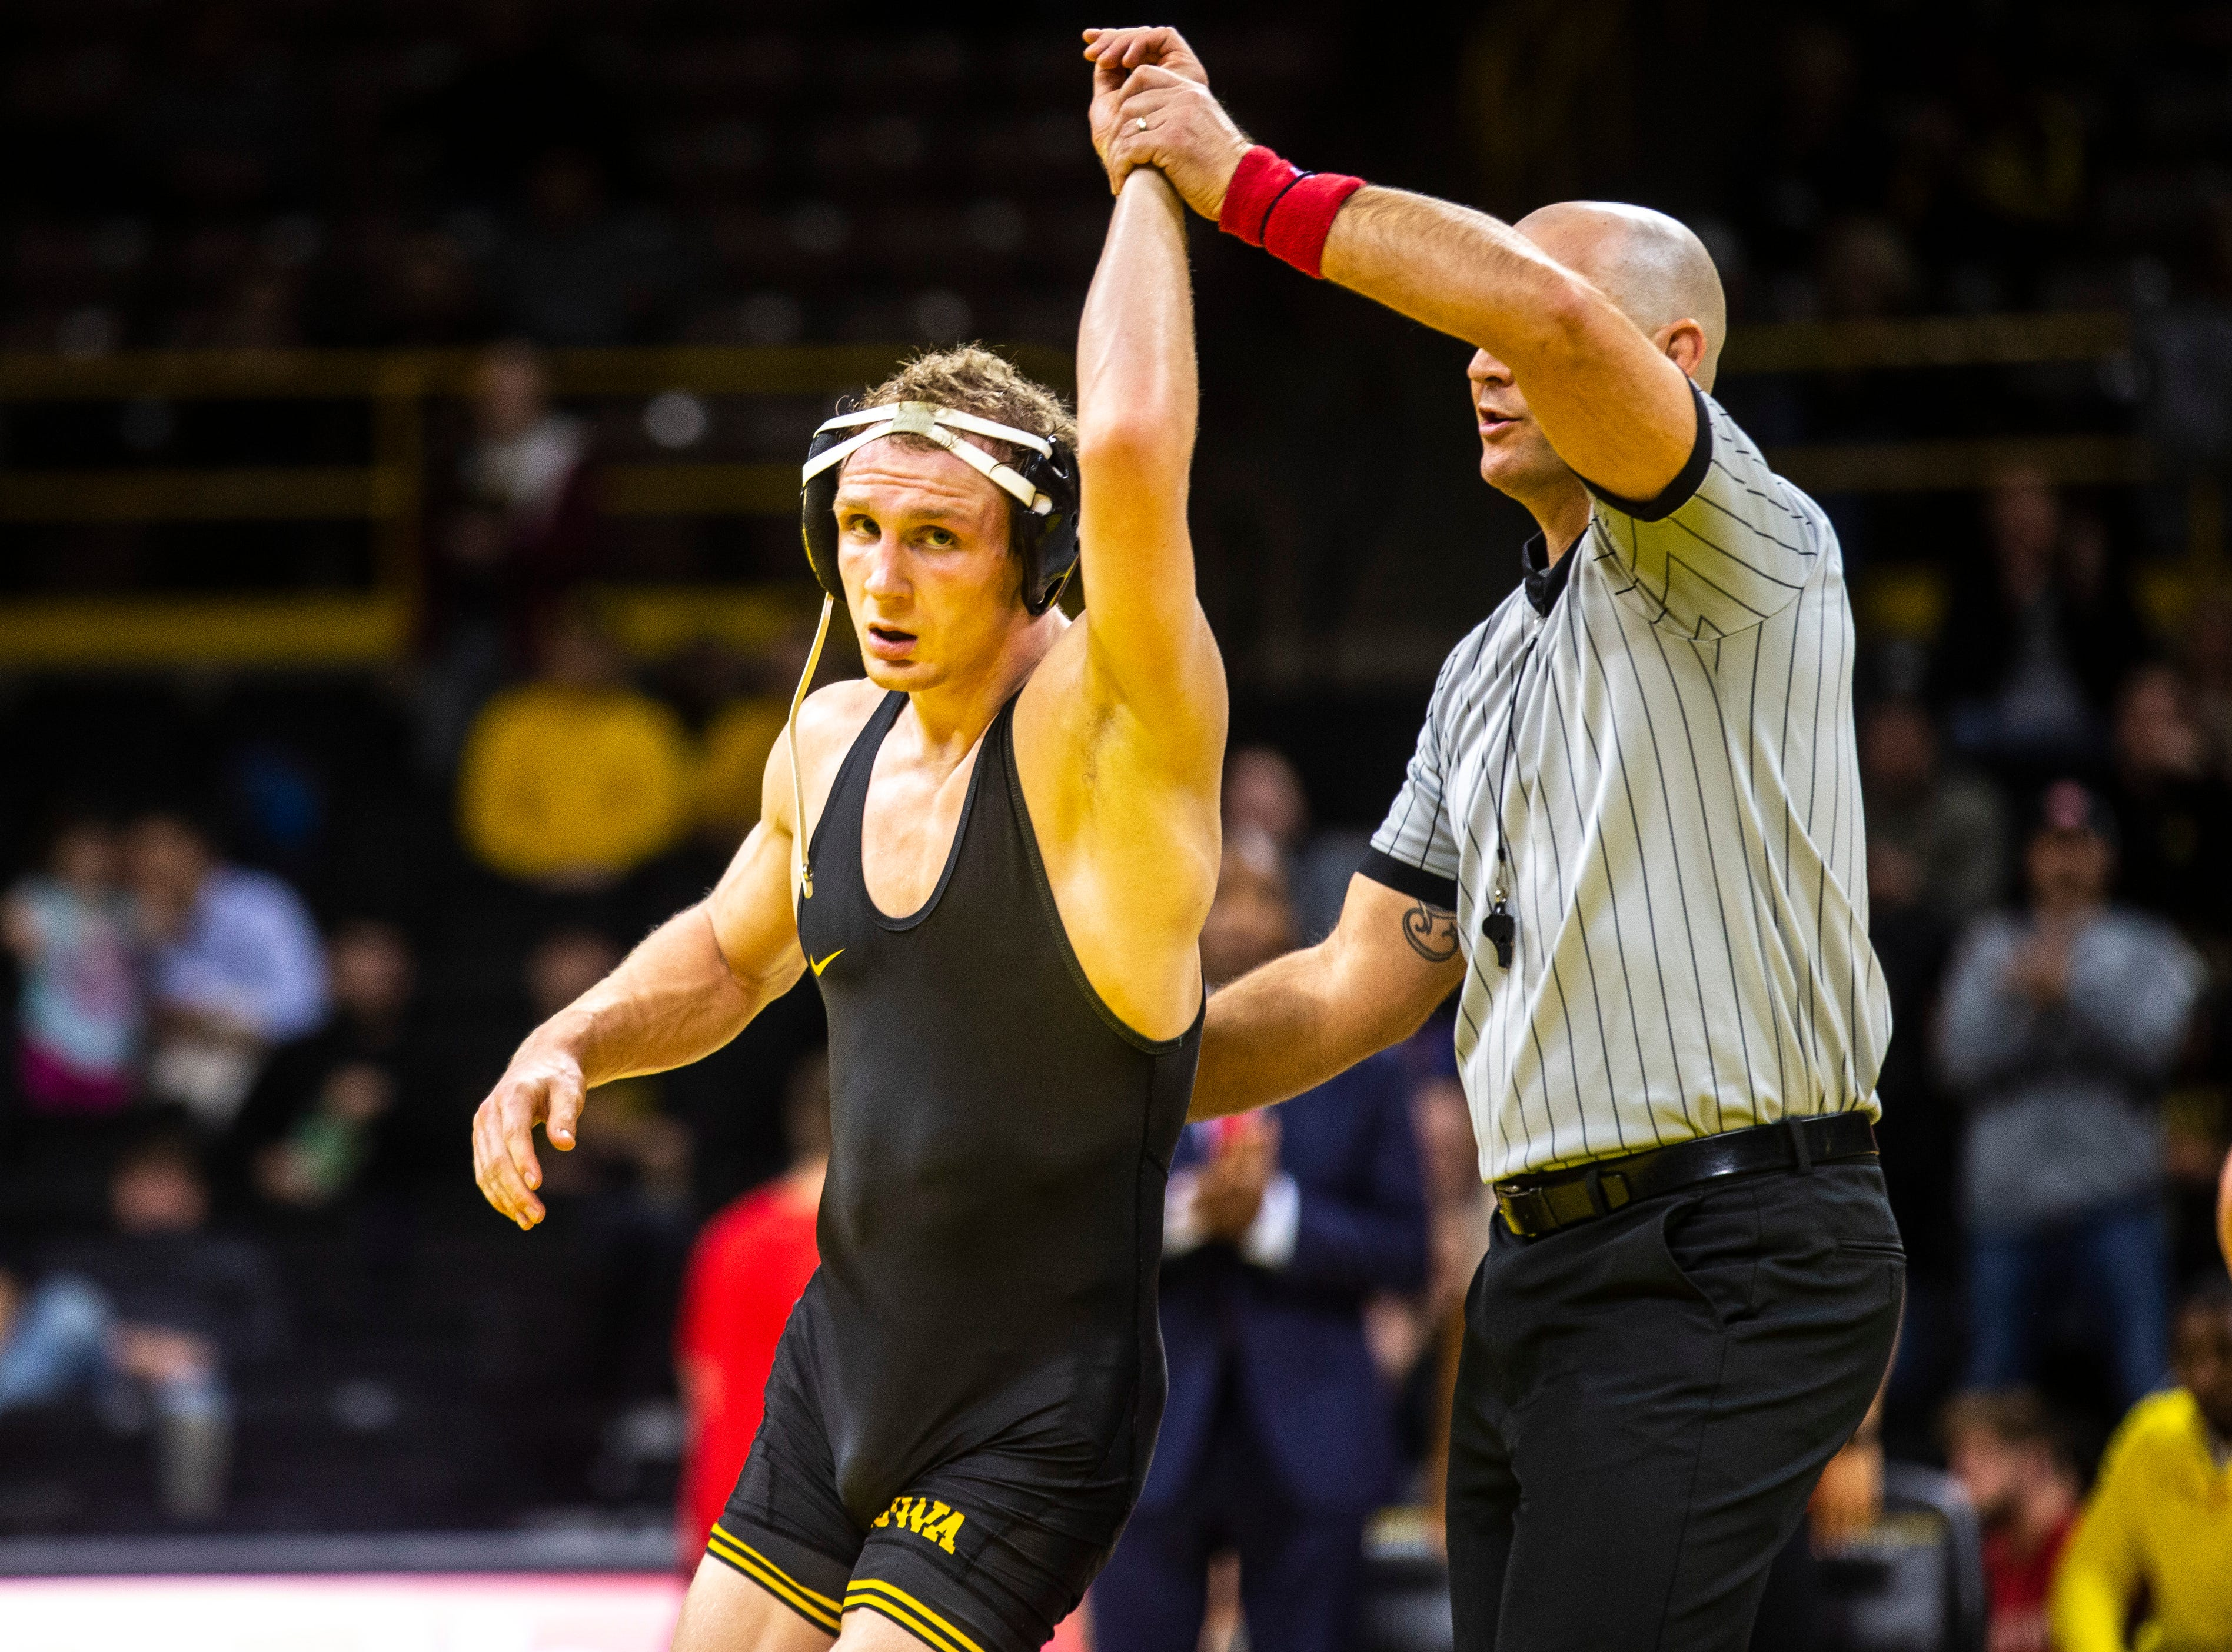 Iowa's Kaleb Young has his hand raised after scoring a decision over Maryland's Ryan Diehl at 157 during a NCAA Big Ten Conference wrestling dual on Friday, Feb. 8, 2019 at Carver-Hawkeye Arena in Iowa City, Iowa.